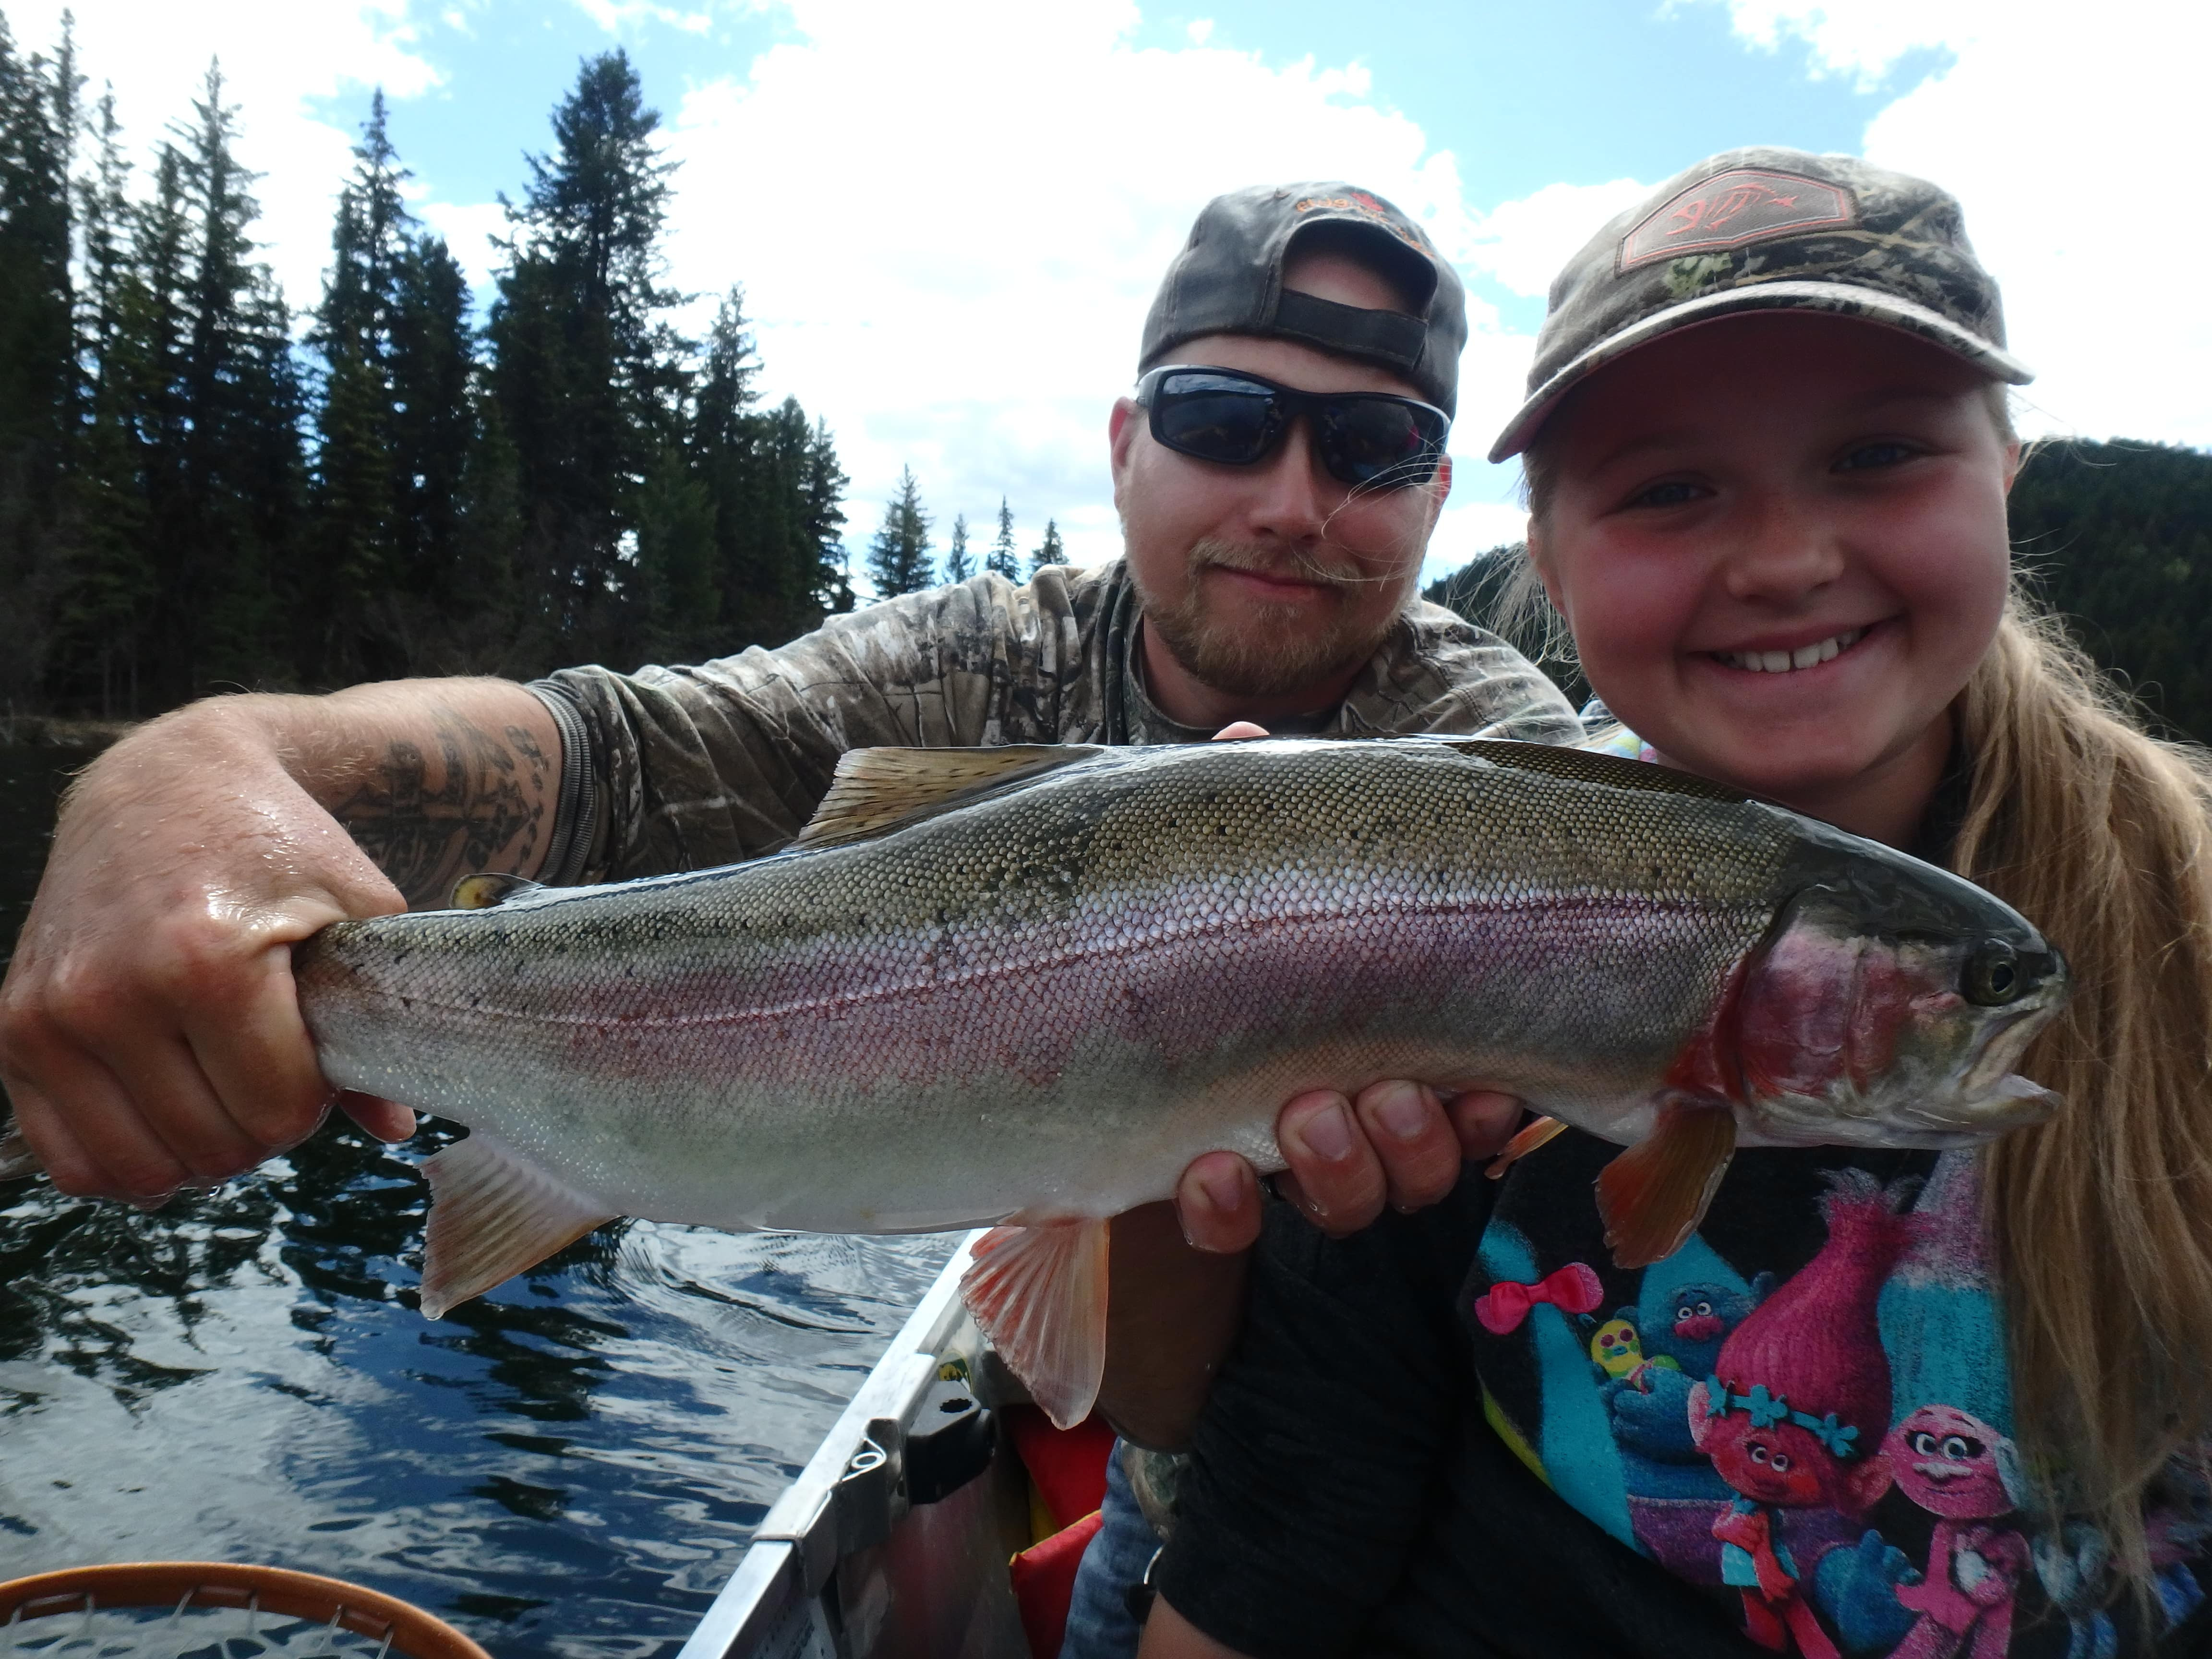 Stillwater Fly Fishing Excursion for Two